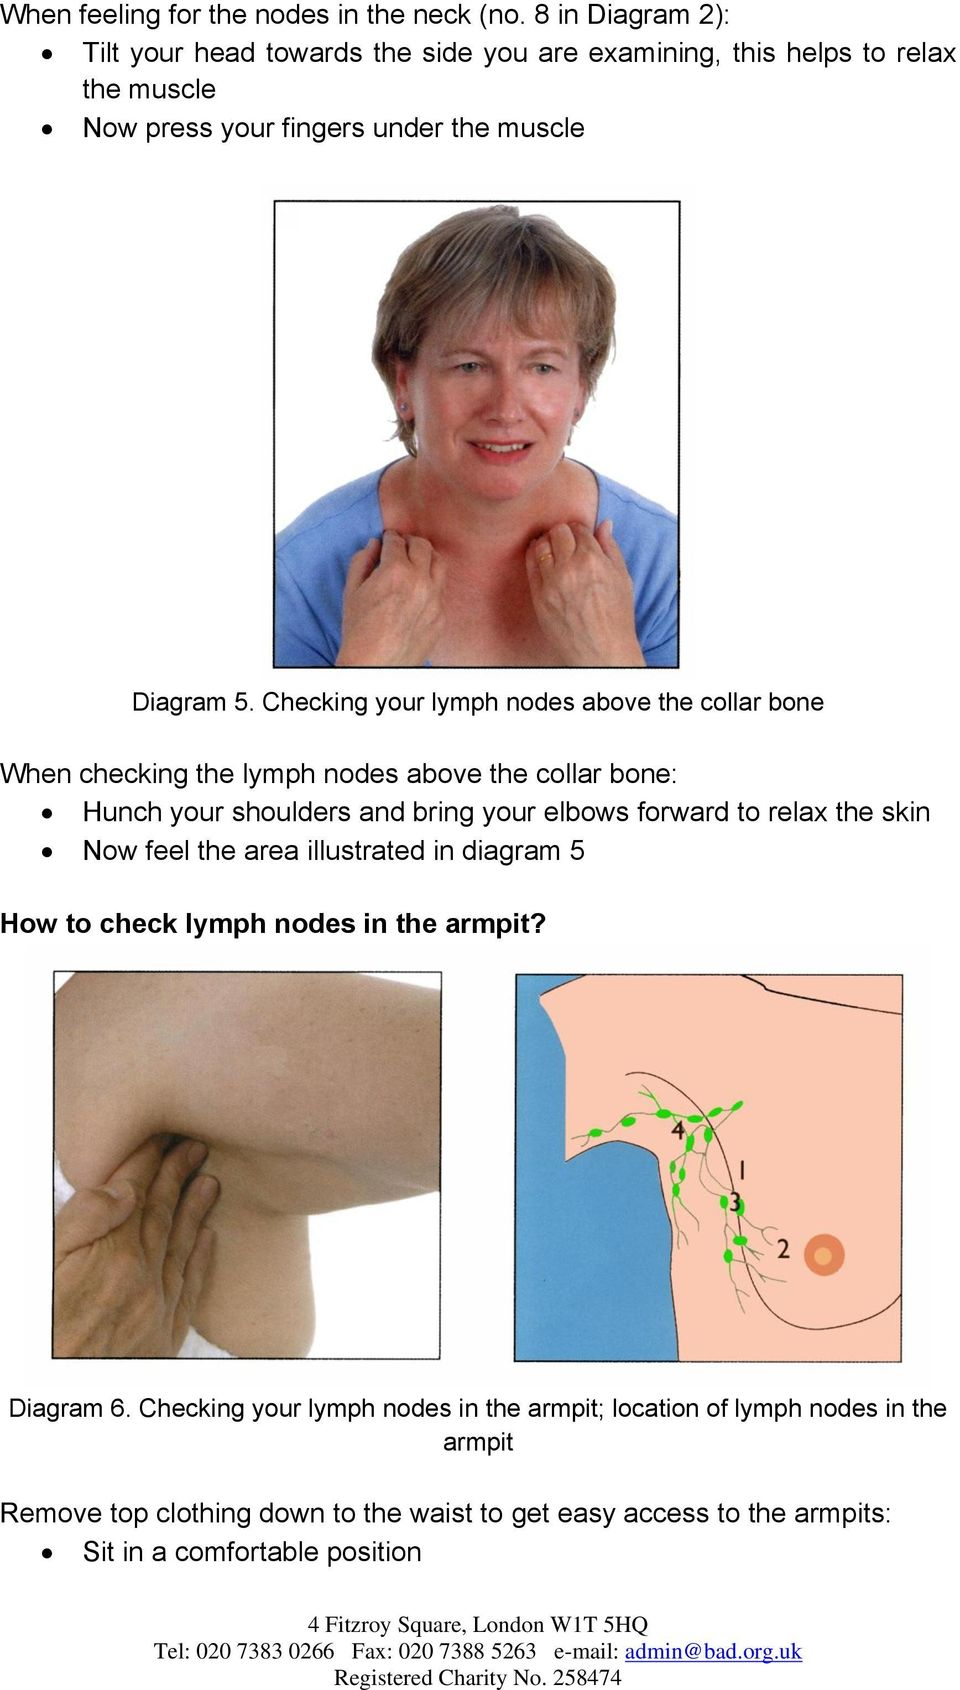 How To Check Your Lymph Nodes Pdf